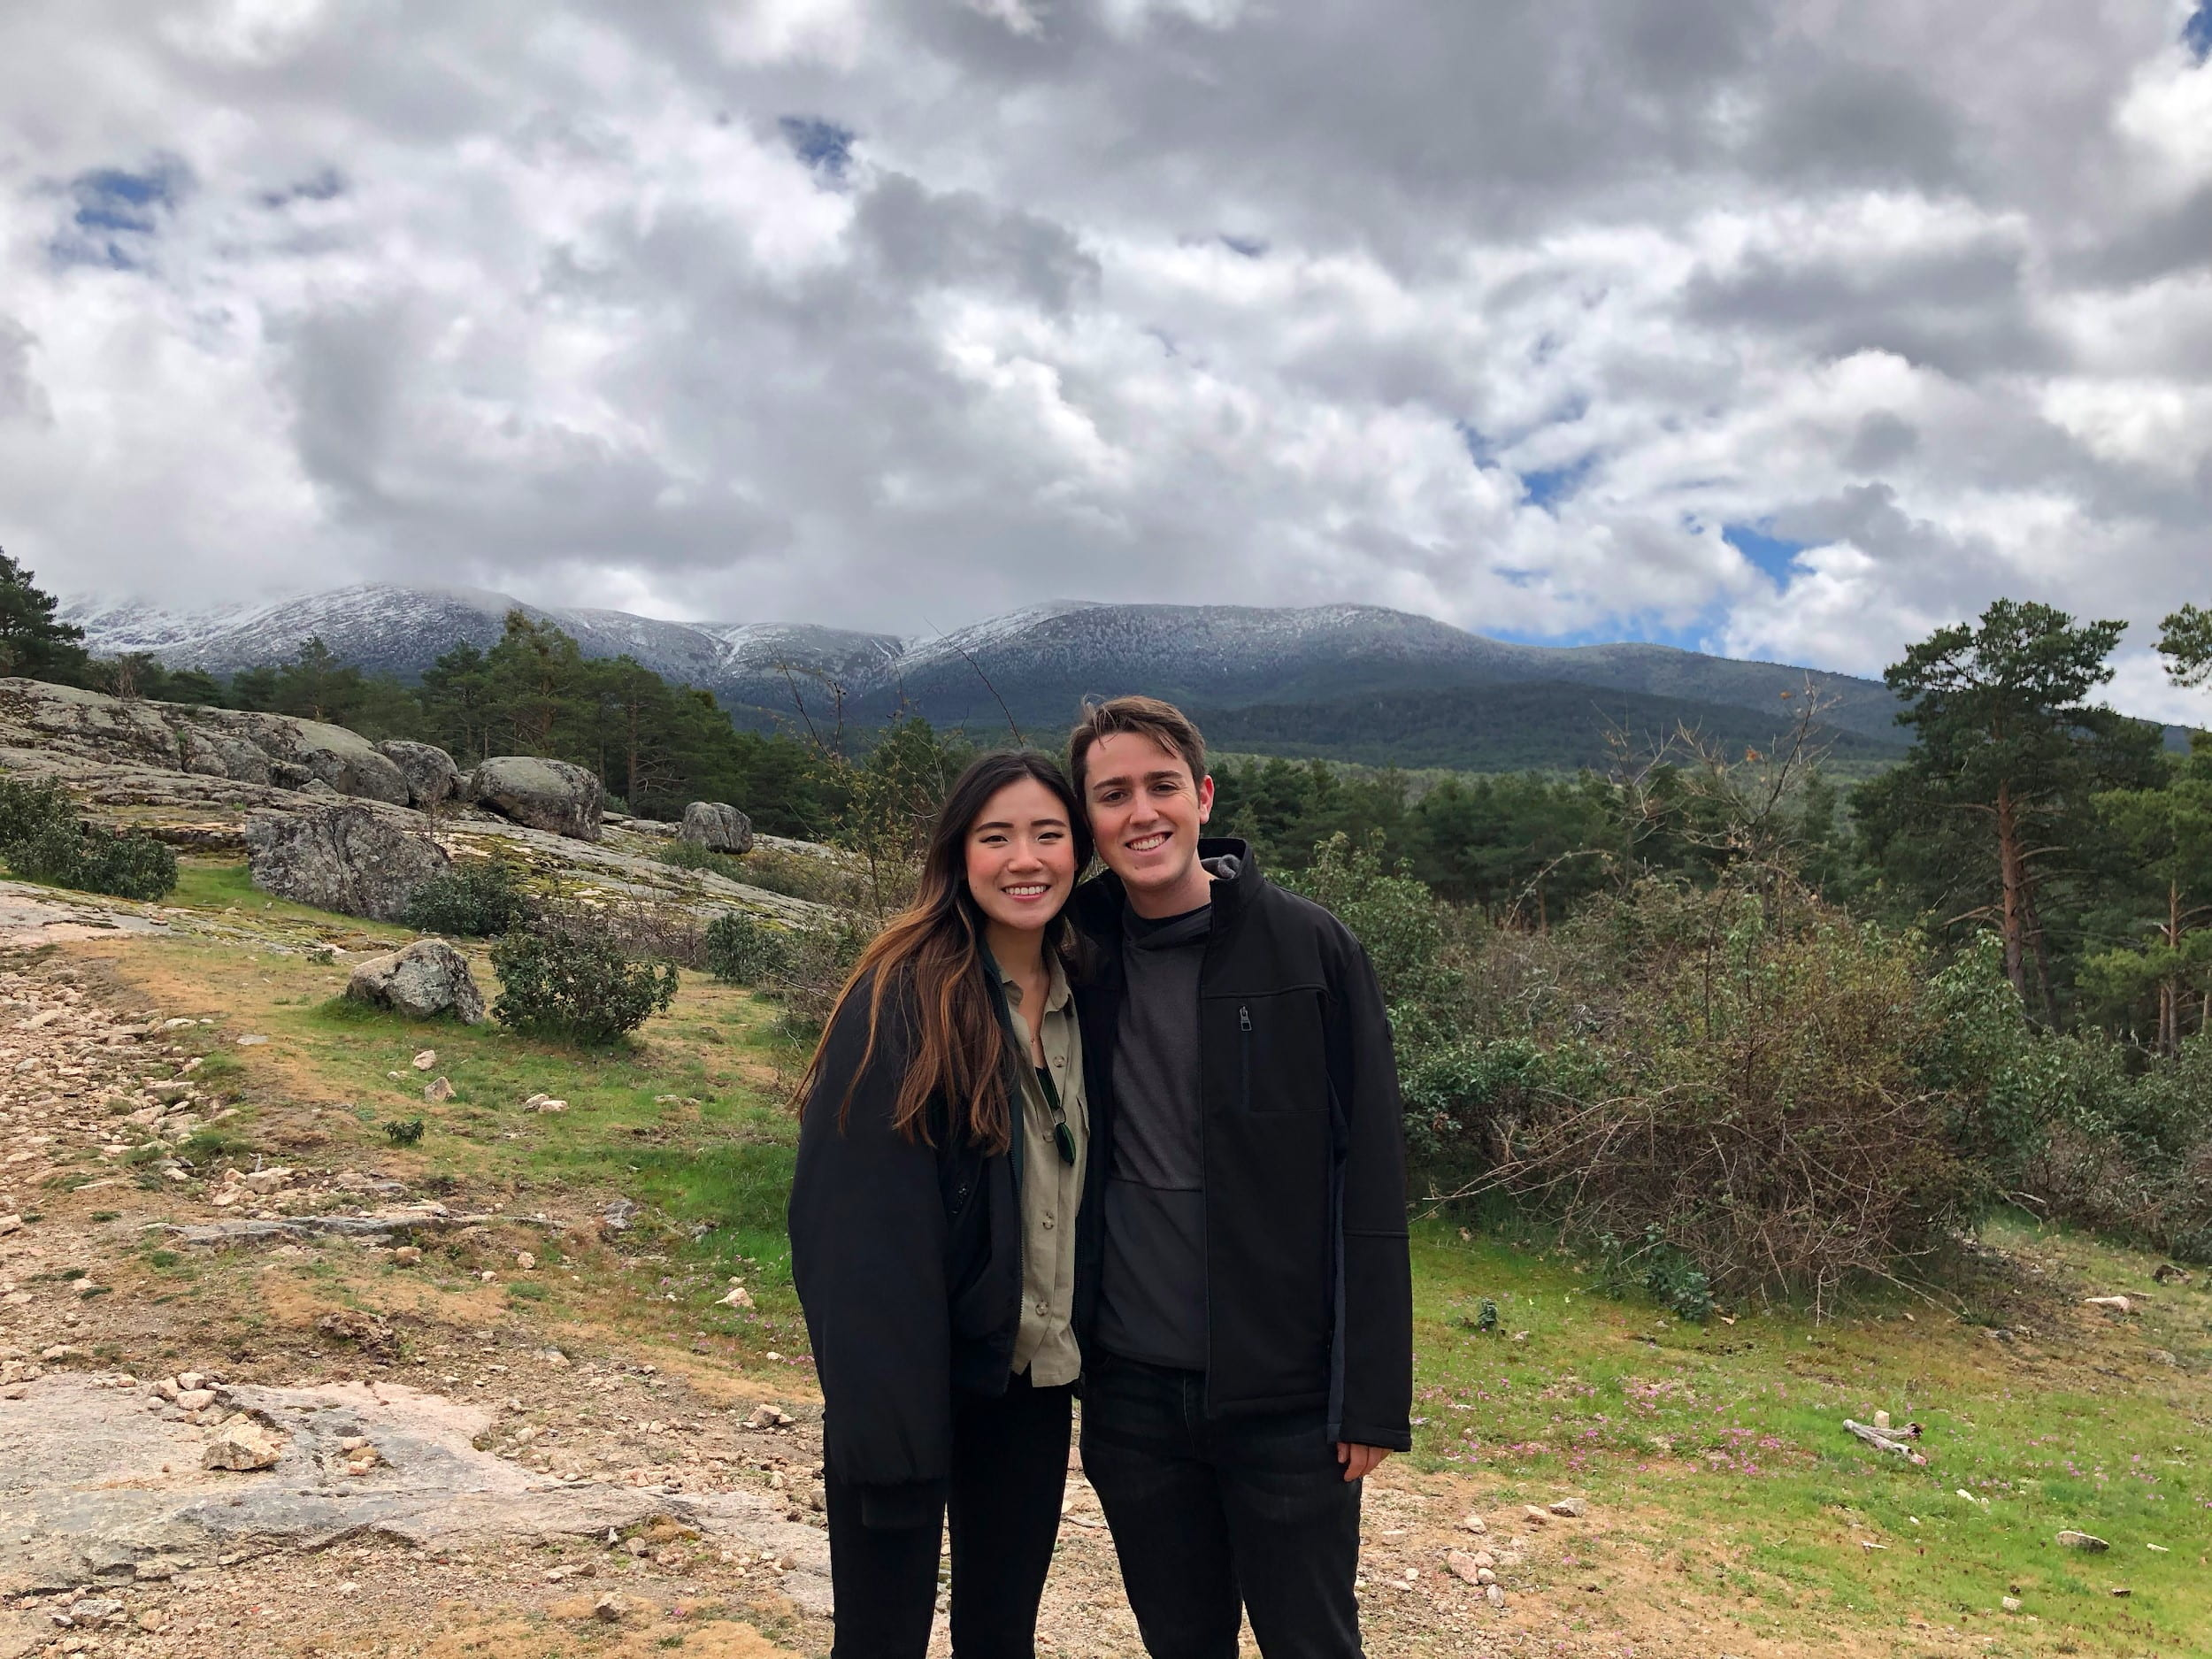 Stuart standing next to friend posing for photo in front of mountainous landscape and cloudy sky